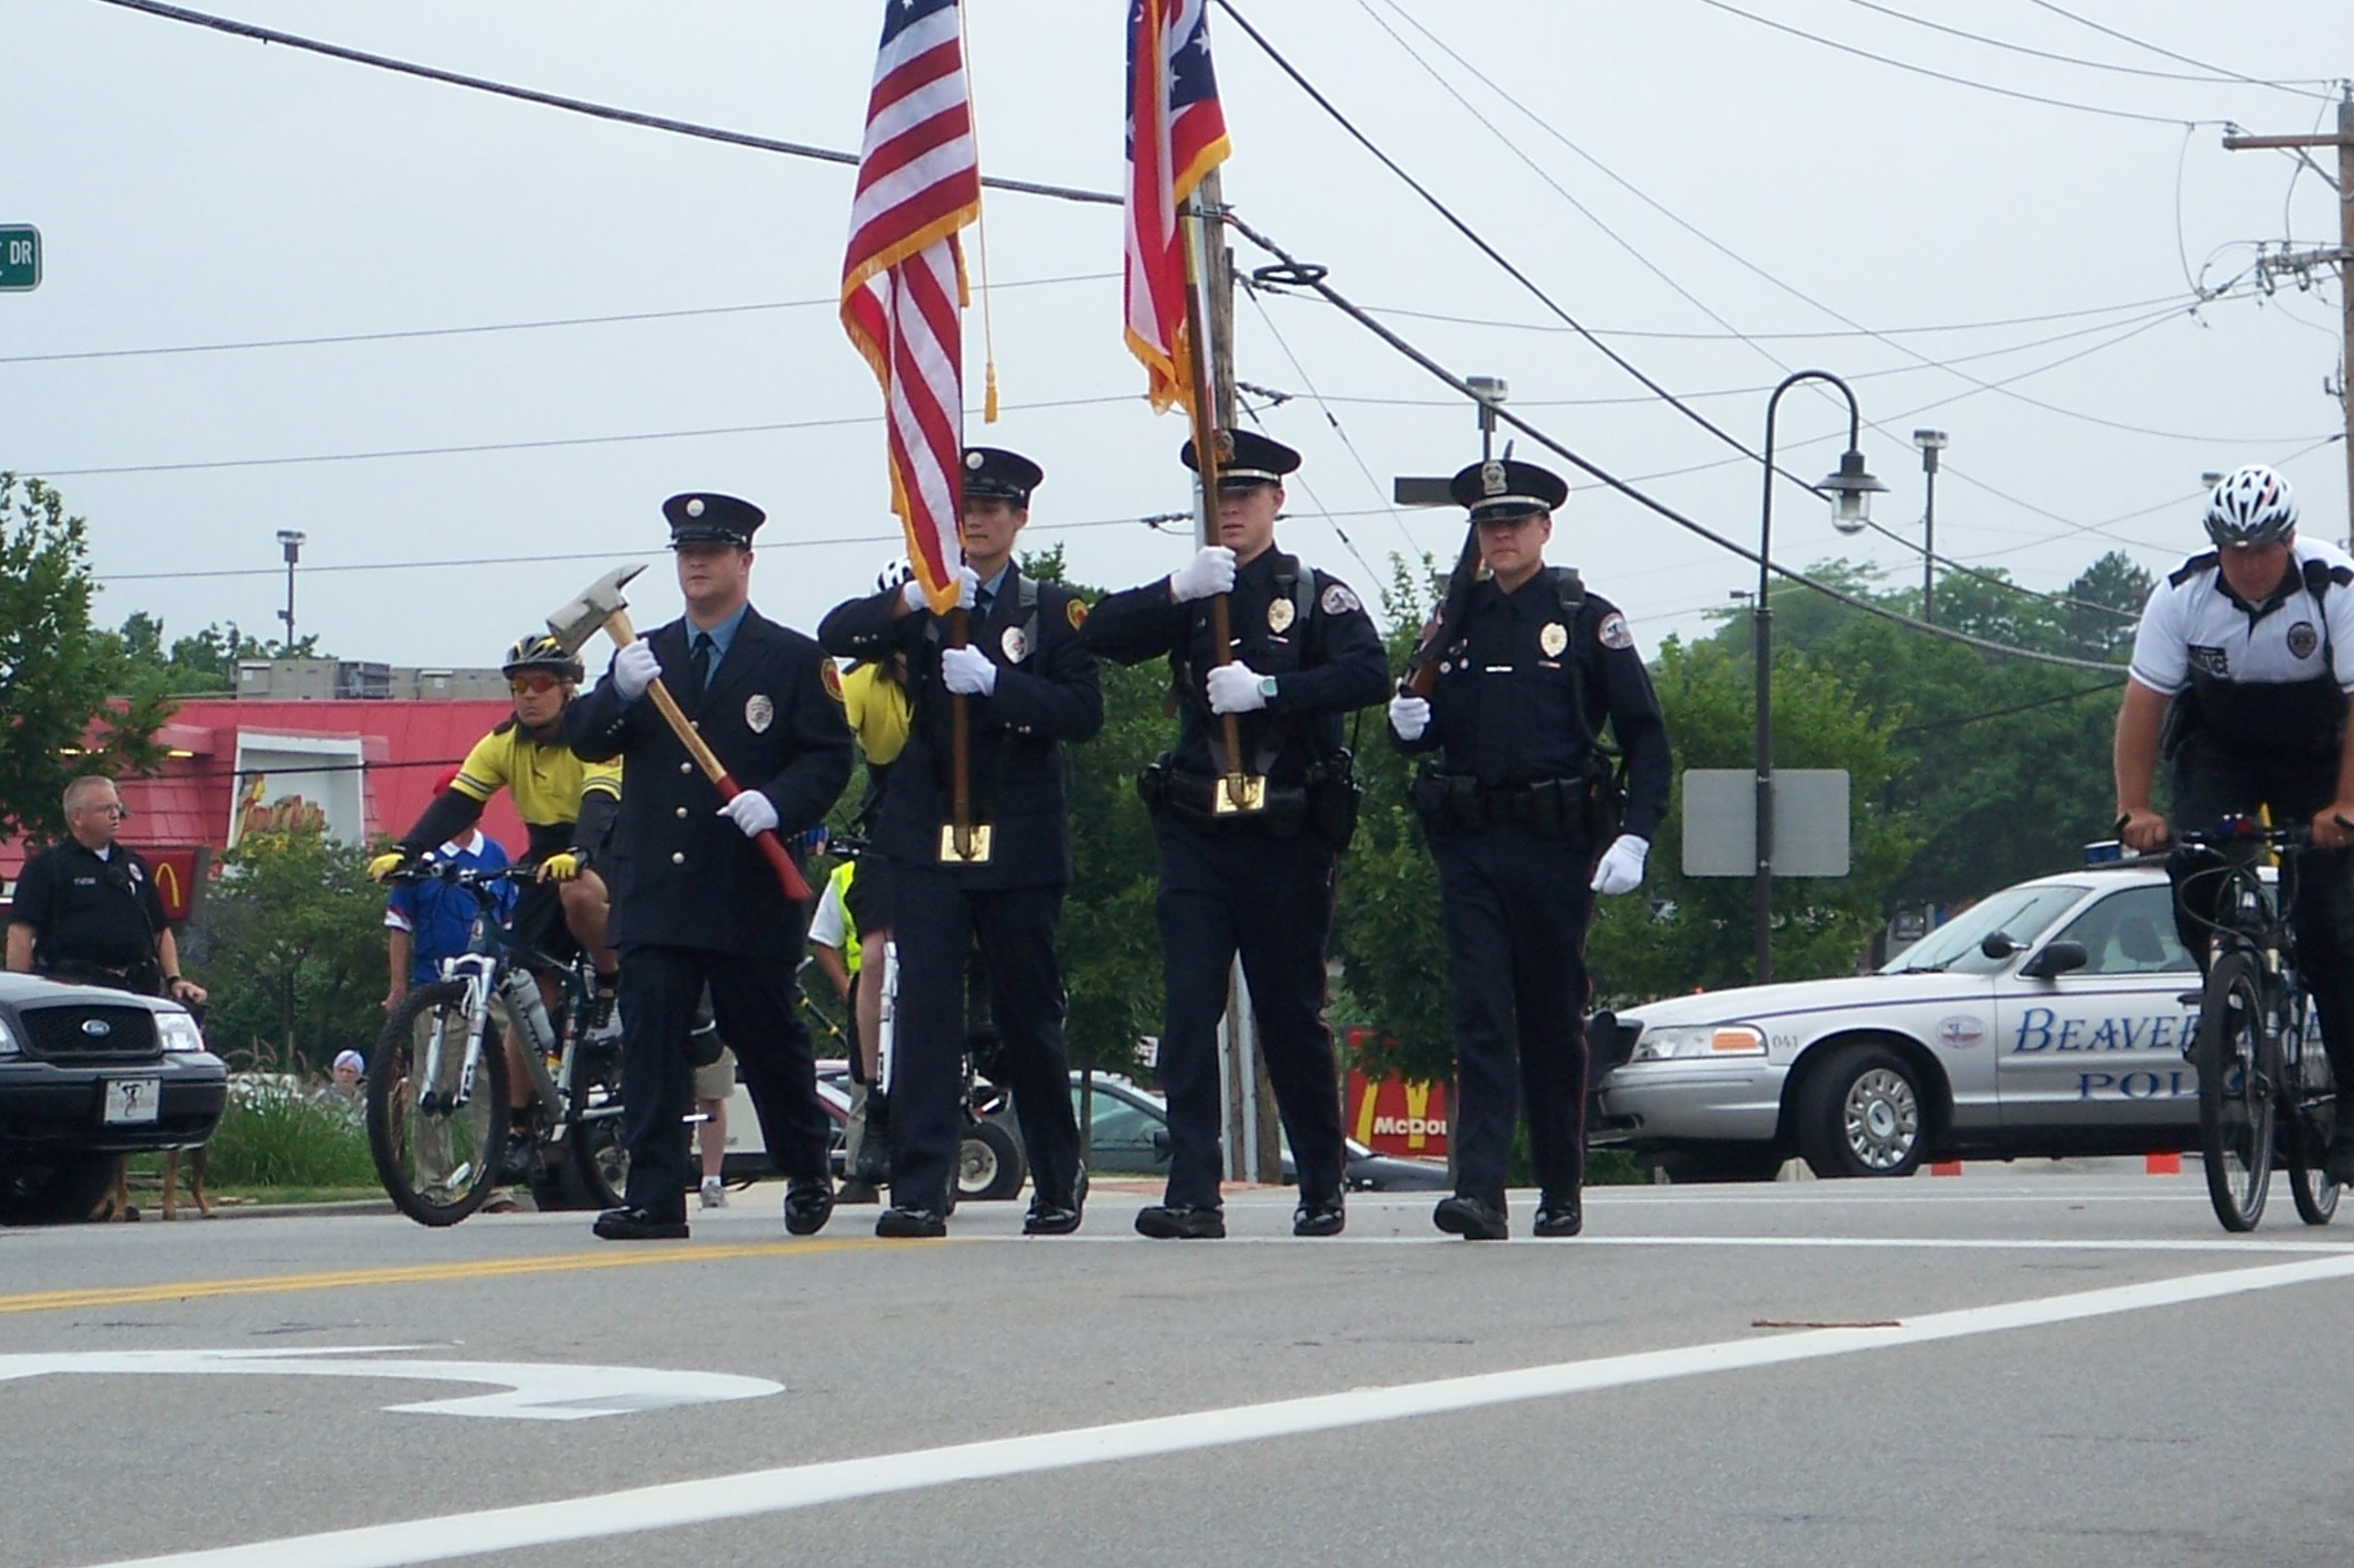 July 4 color guard